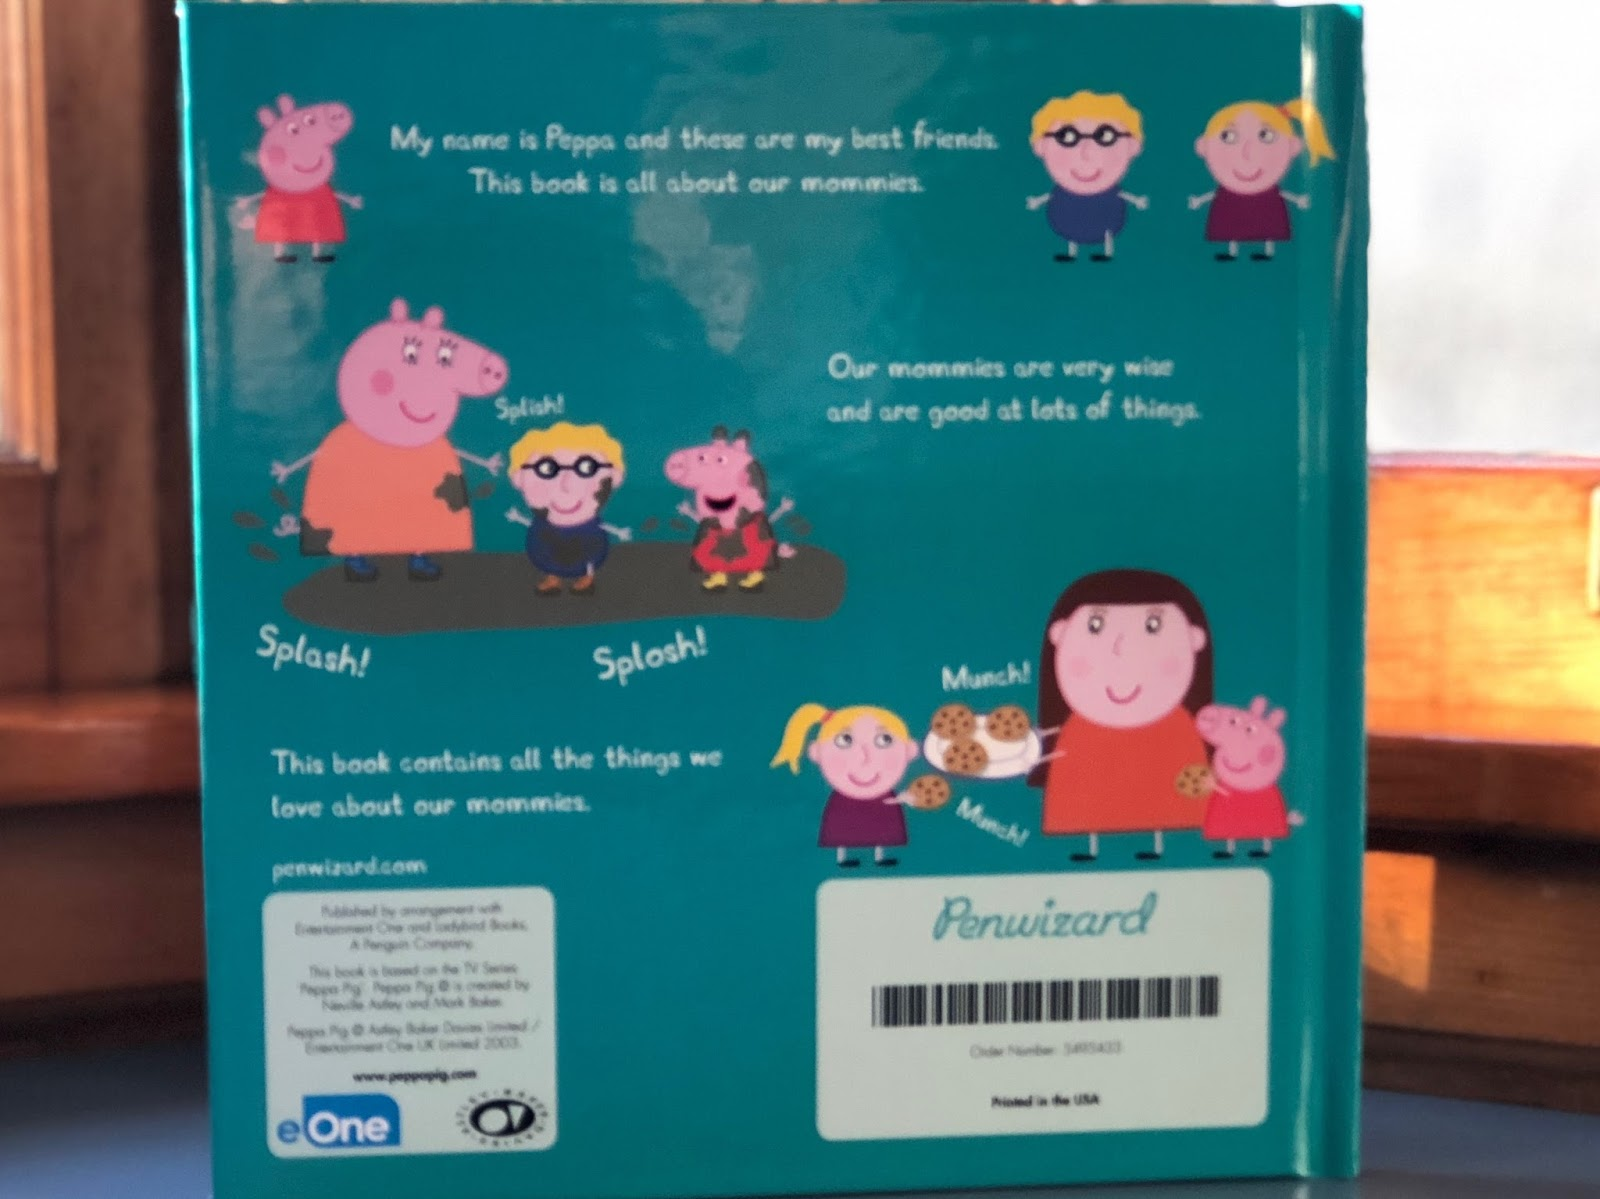 8600023ebe42d All in all, I think this book is really cute and my niece will love it.  There could be a few more customization options (like changing 'Mommy' to  'Mummy' or ...